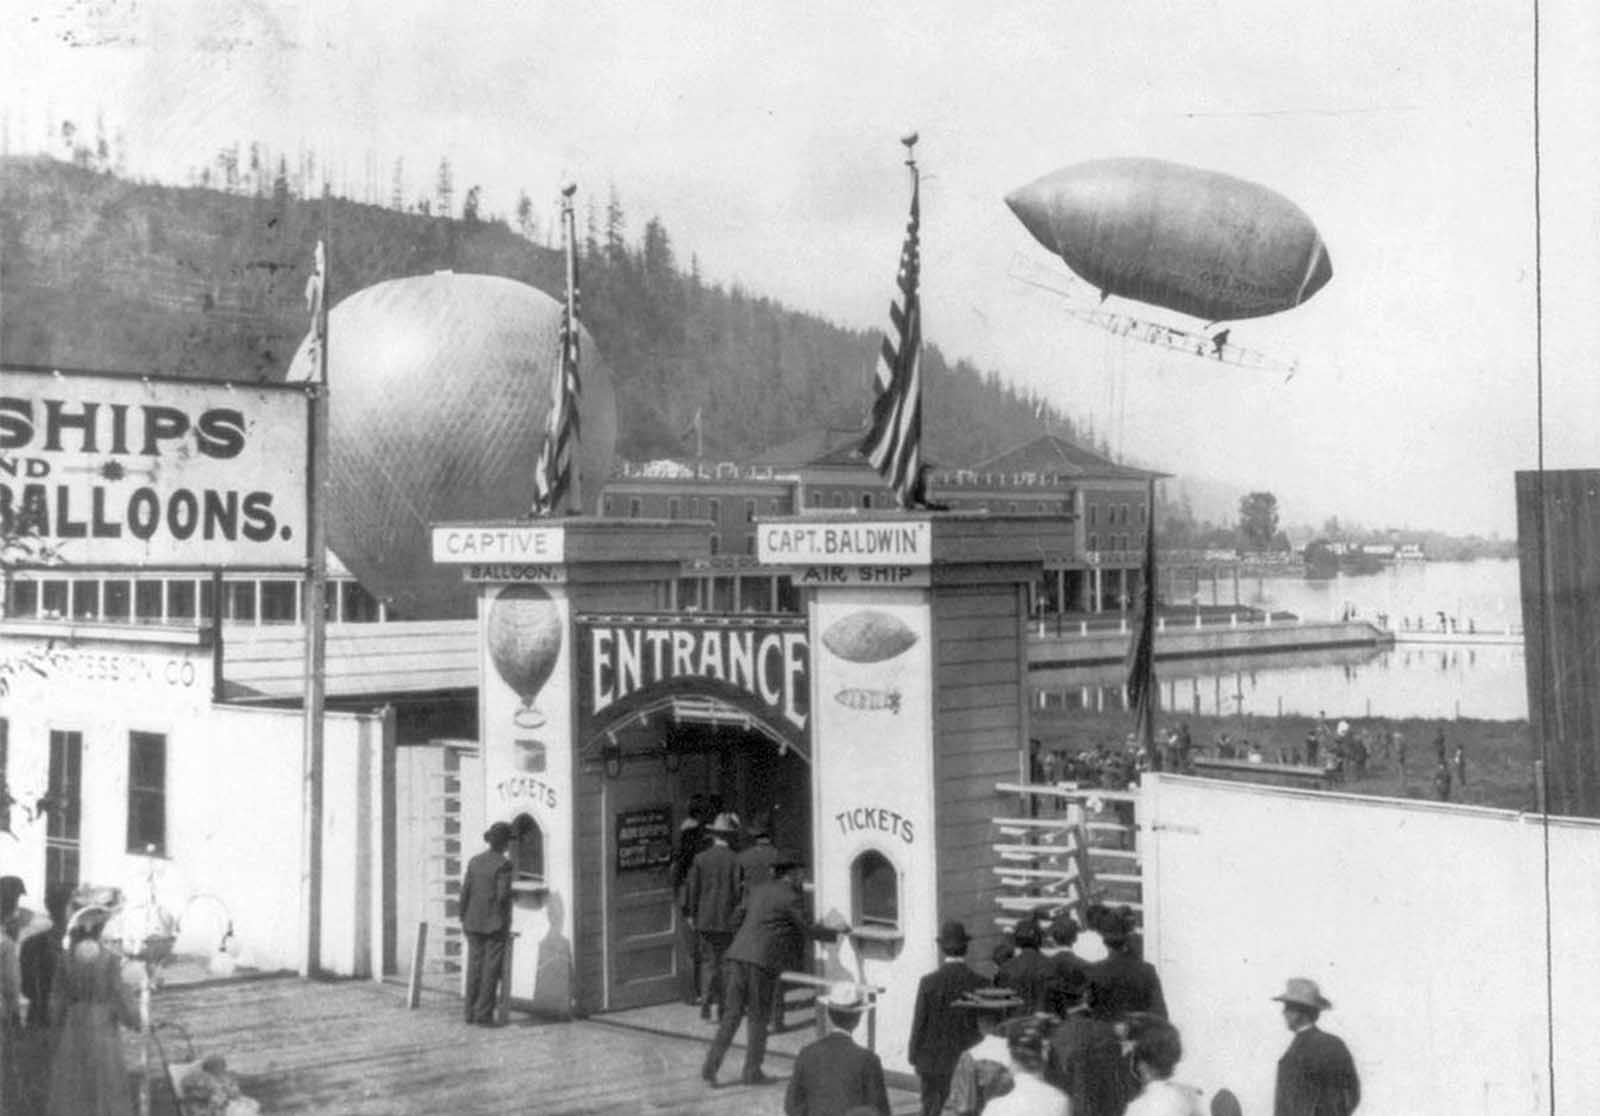 In 1905, pioneering balloonist Thomas Scott Baldwin's latest airship returns from a flight over the City of Portland, Oregon, during the Lewis and Clark Centennial Exposition.